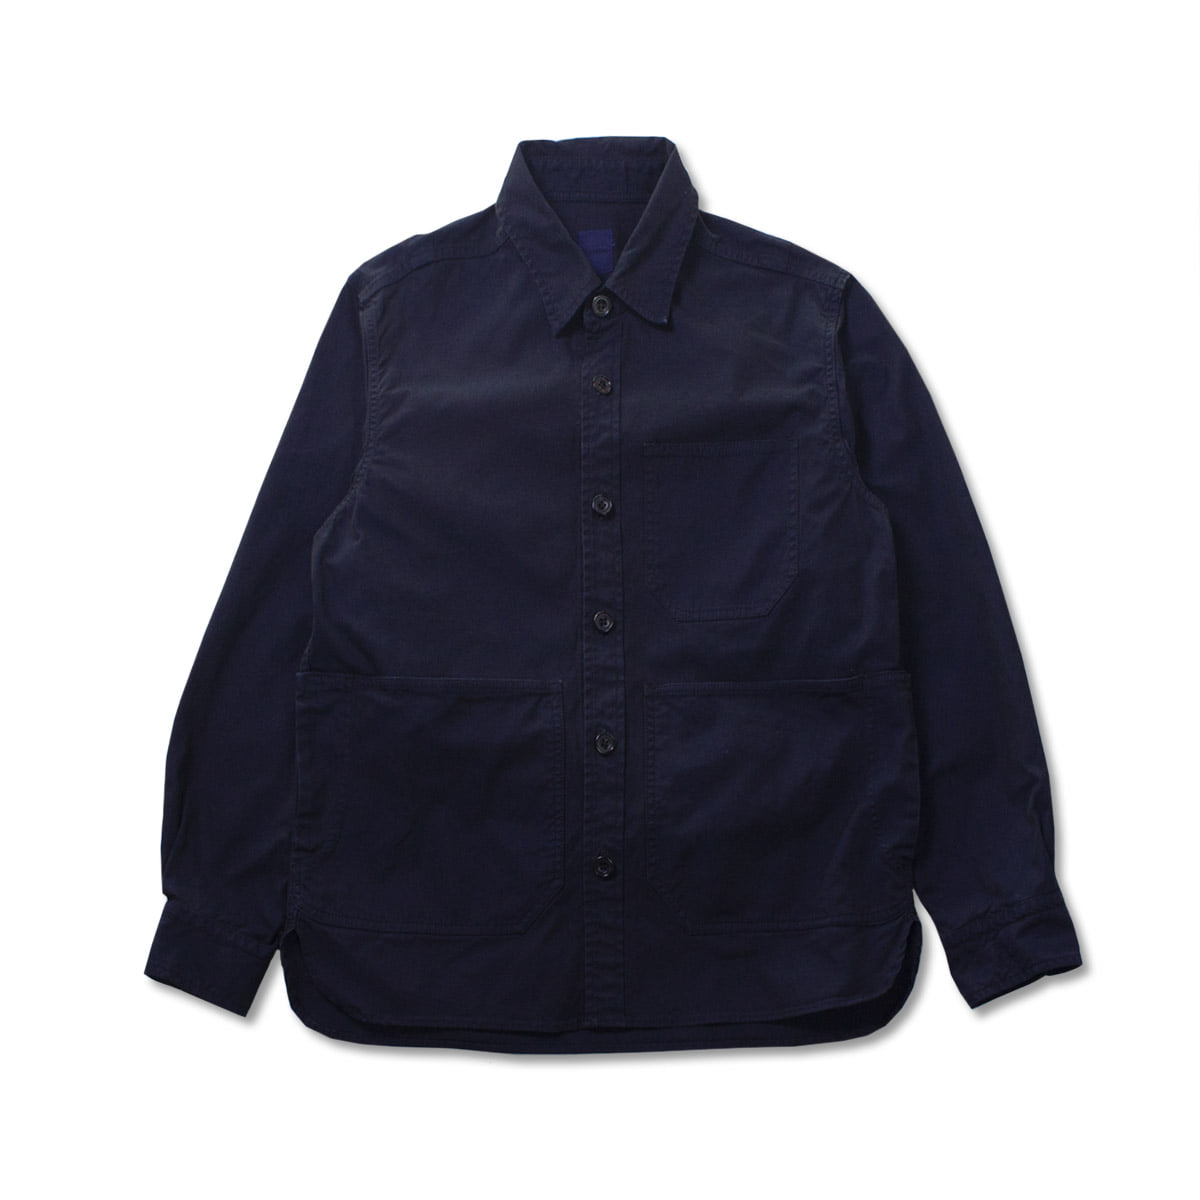 [SAGE DE CRET] SHIRT JACKET 'NAVY'